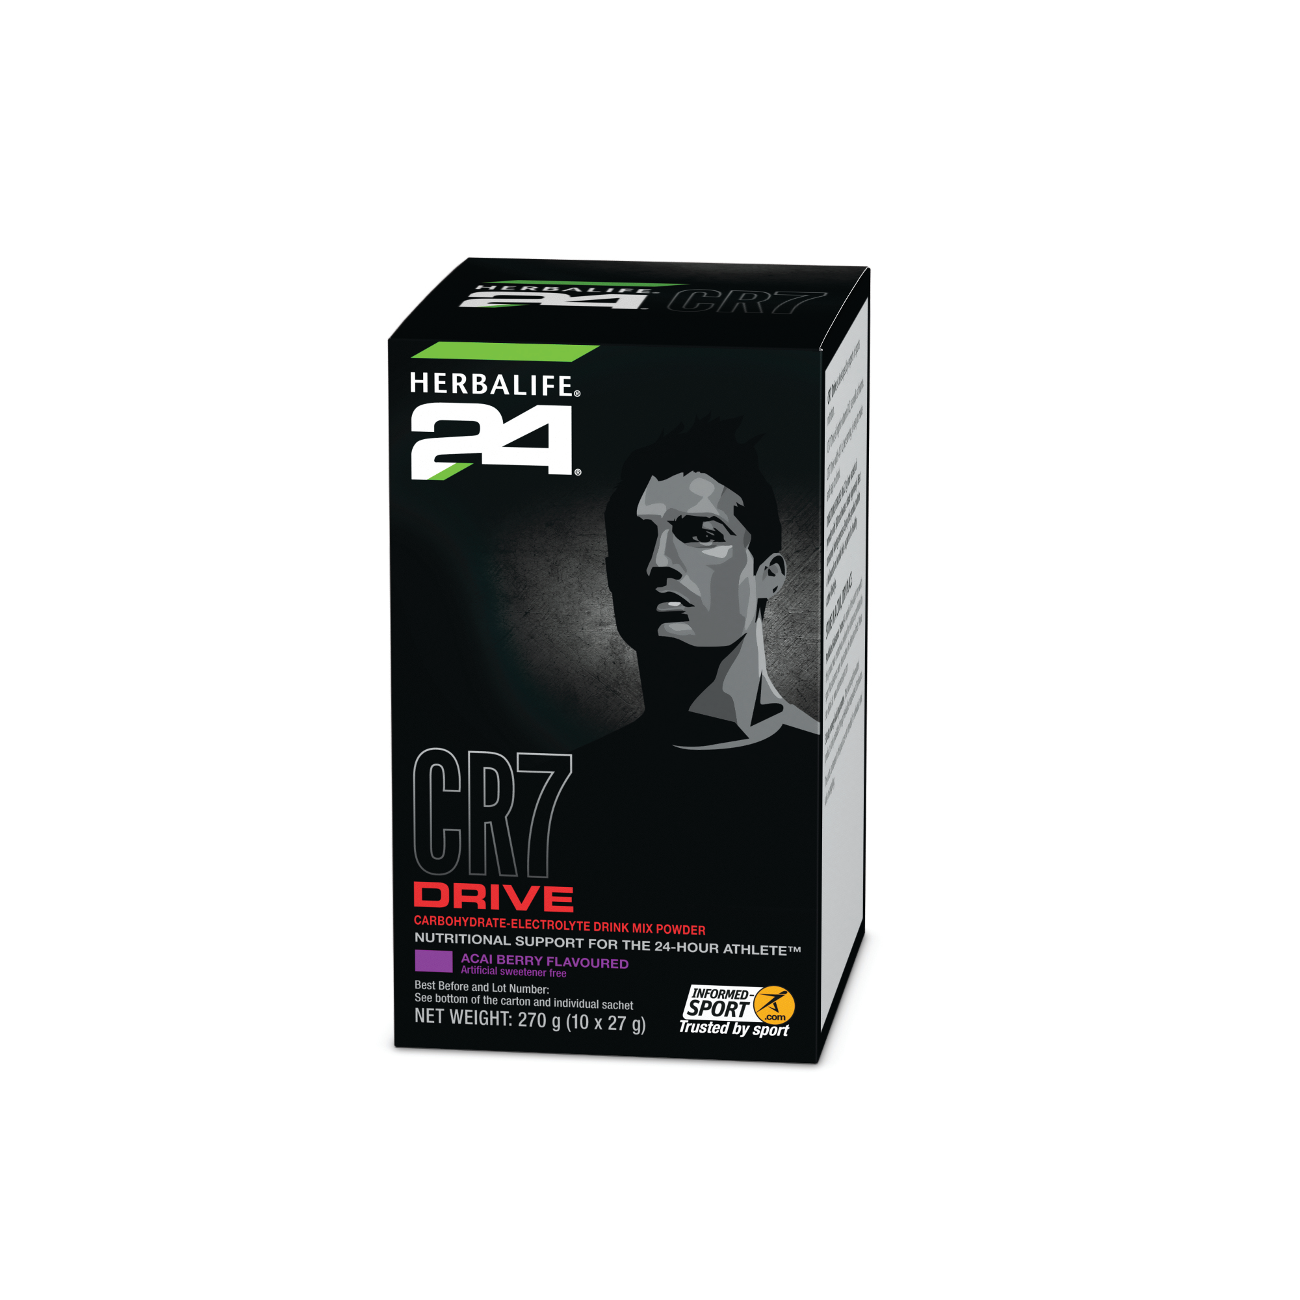 Herbalife24® CR7 Drive Carbohydrate-Electrolyte Drink Mix Acai Berry Flavoured 10 g product shot